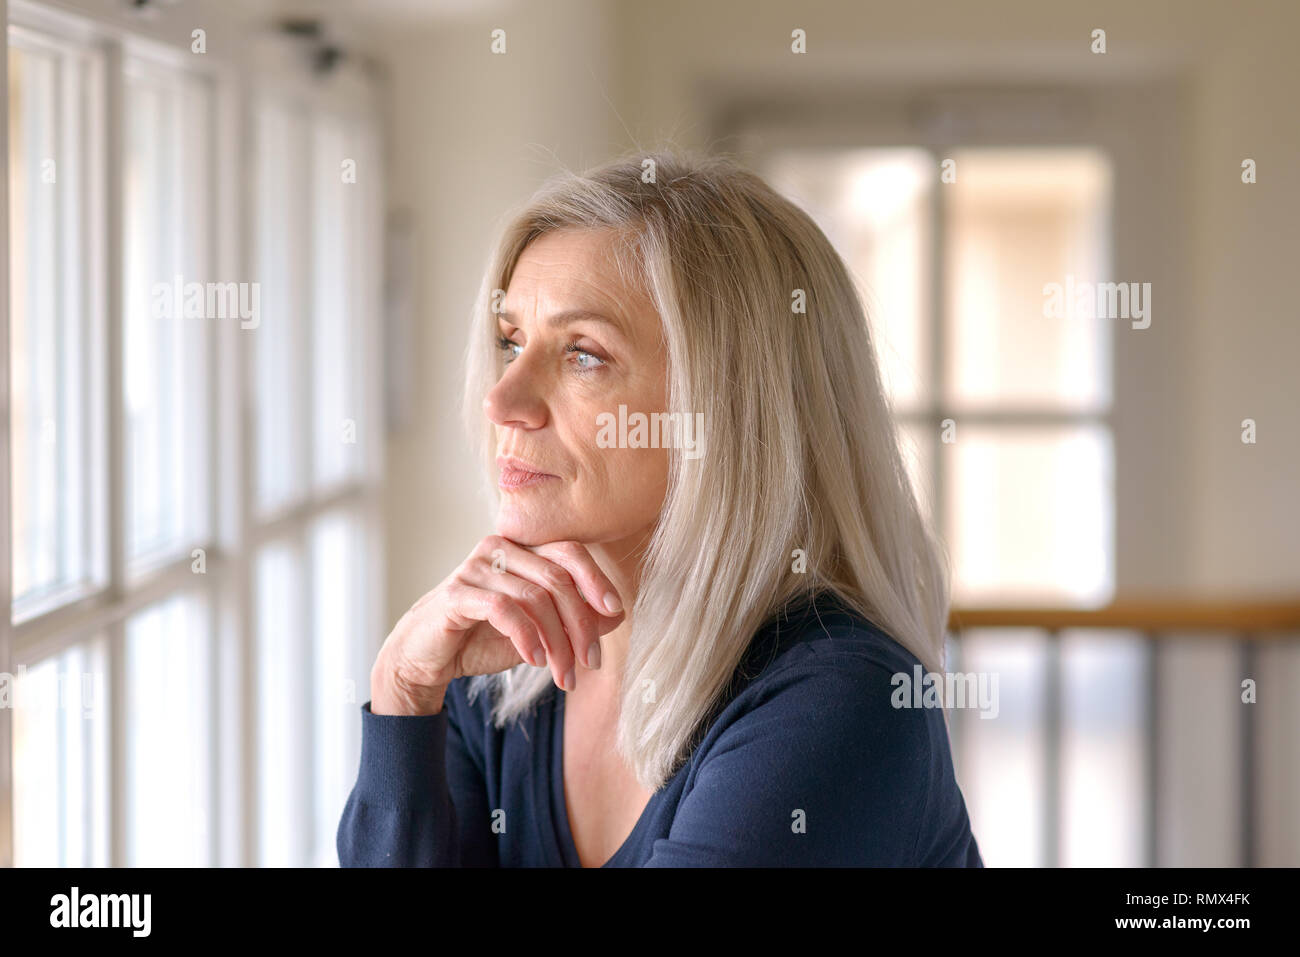 Attractive thoughtful woman with serious expression standing with her hand to her chin staring quietly out of a large window Stock Photo